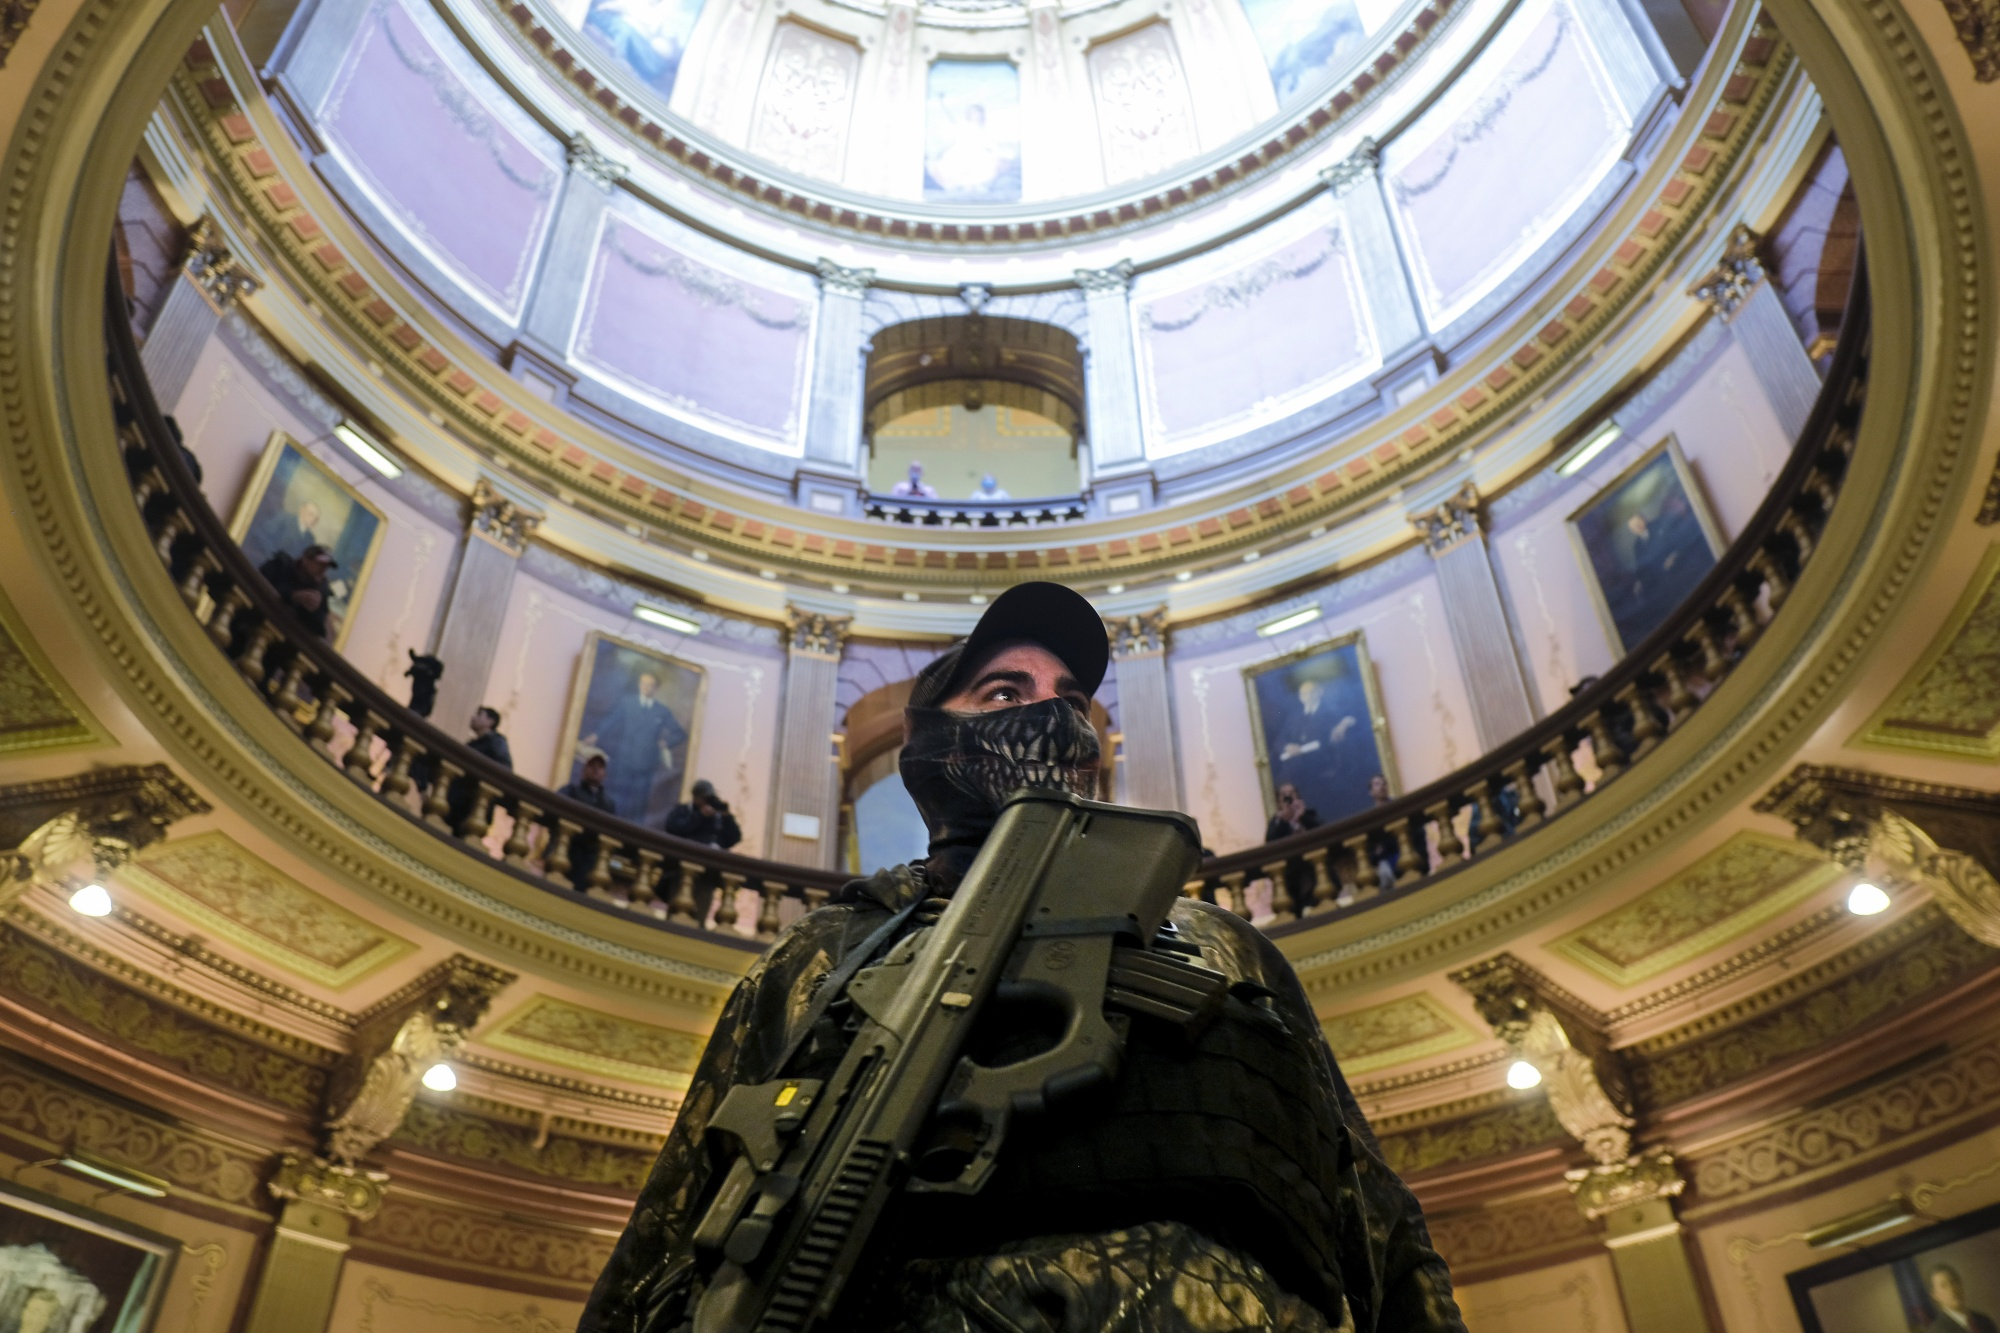 Michigan Cancels Legislative Session to Avoid Armed Protesters - Bloomberg